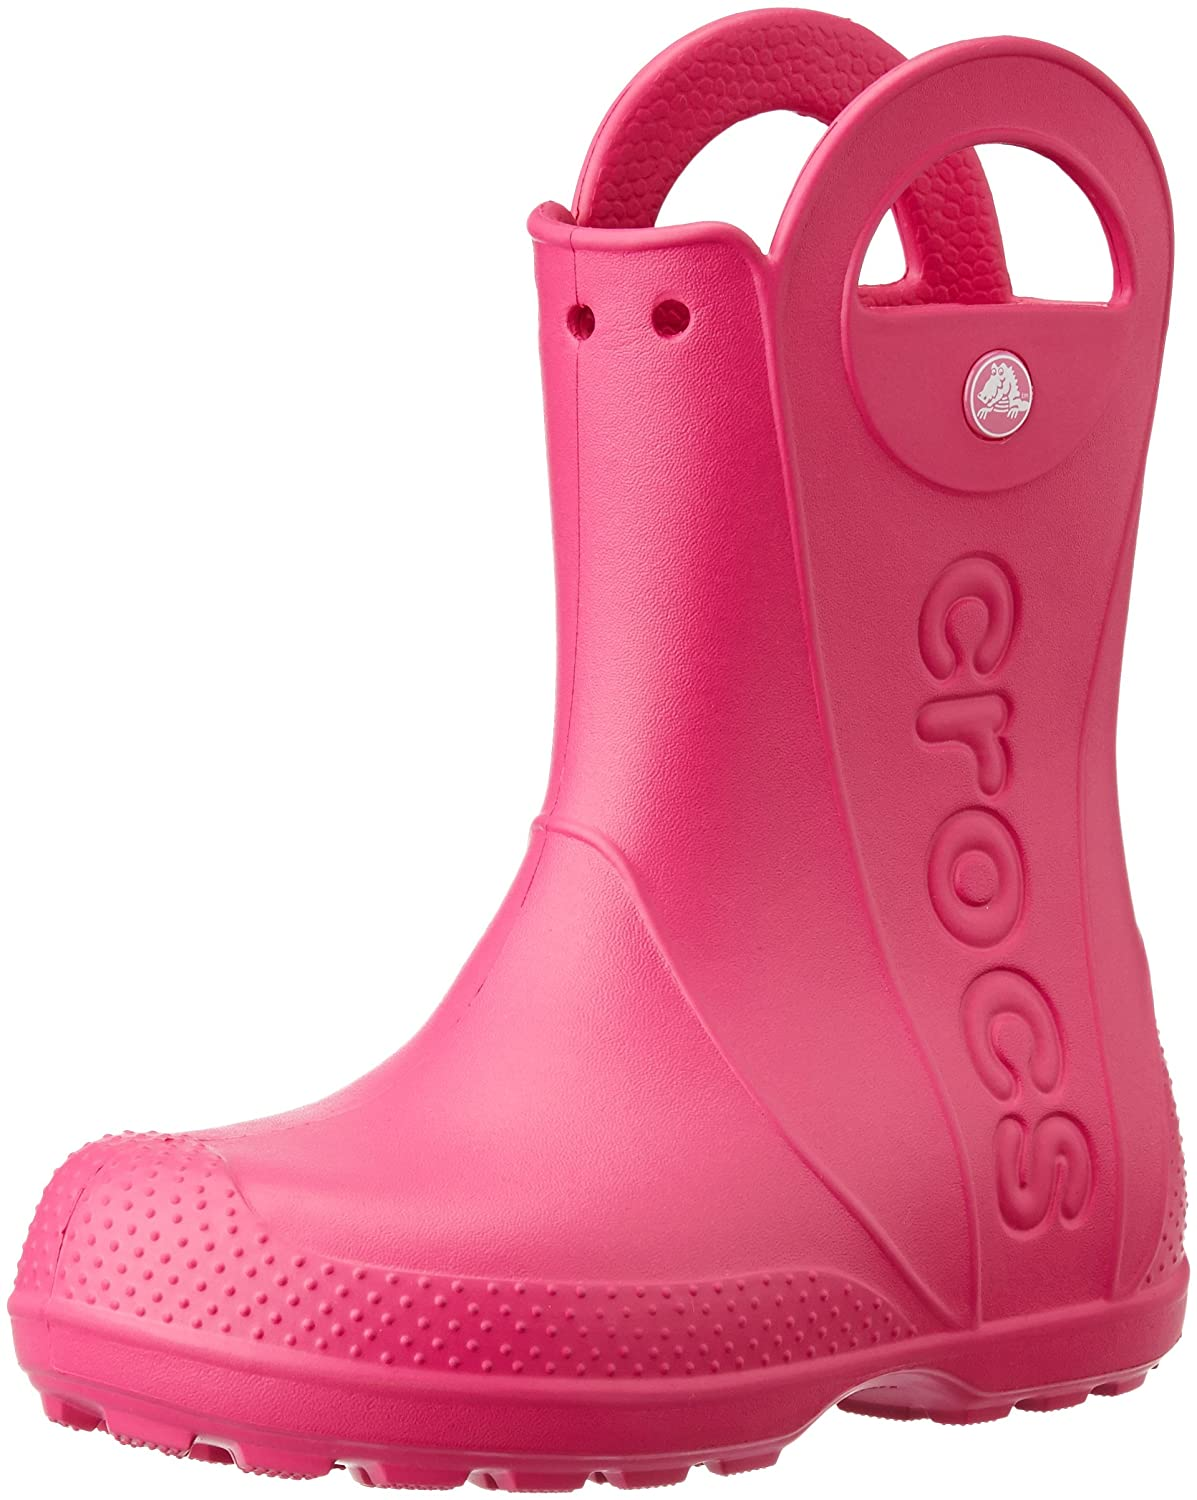 Crocs Kids' Handle It Rain Boot| Easy On for Toddlers, Boys, Girls | Lightweight and Waterproof